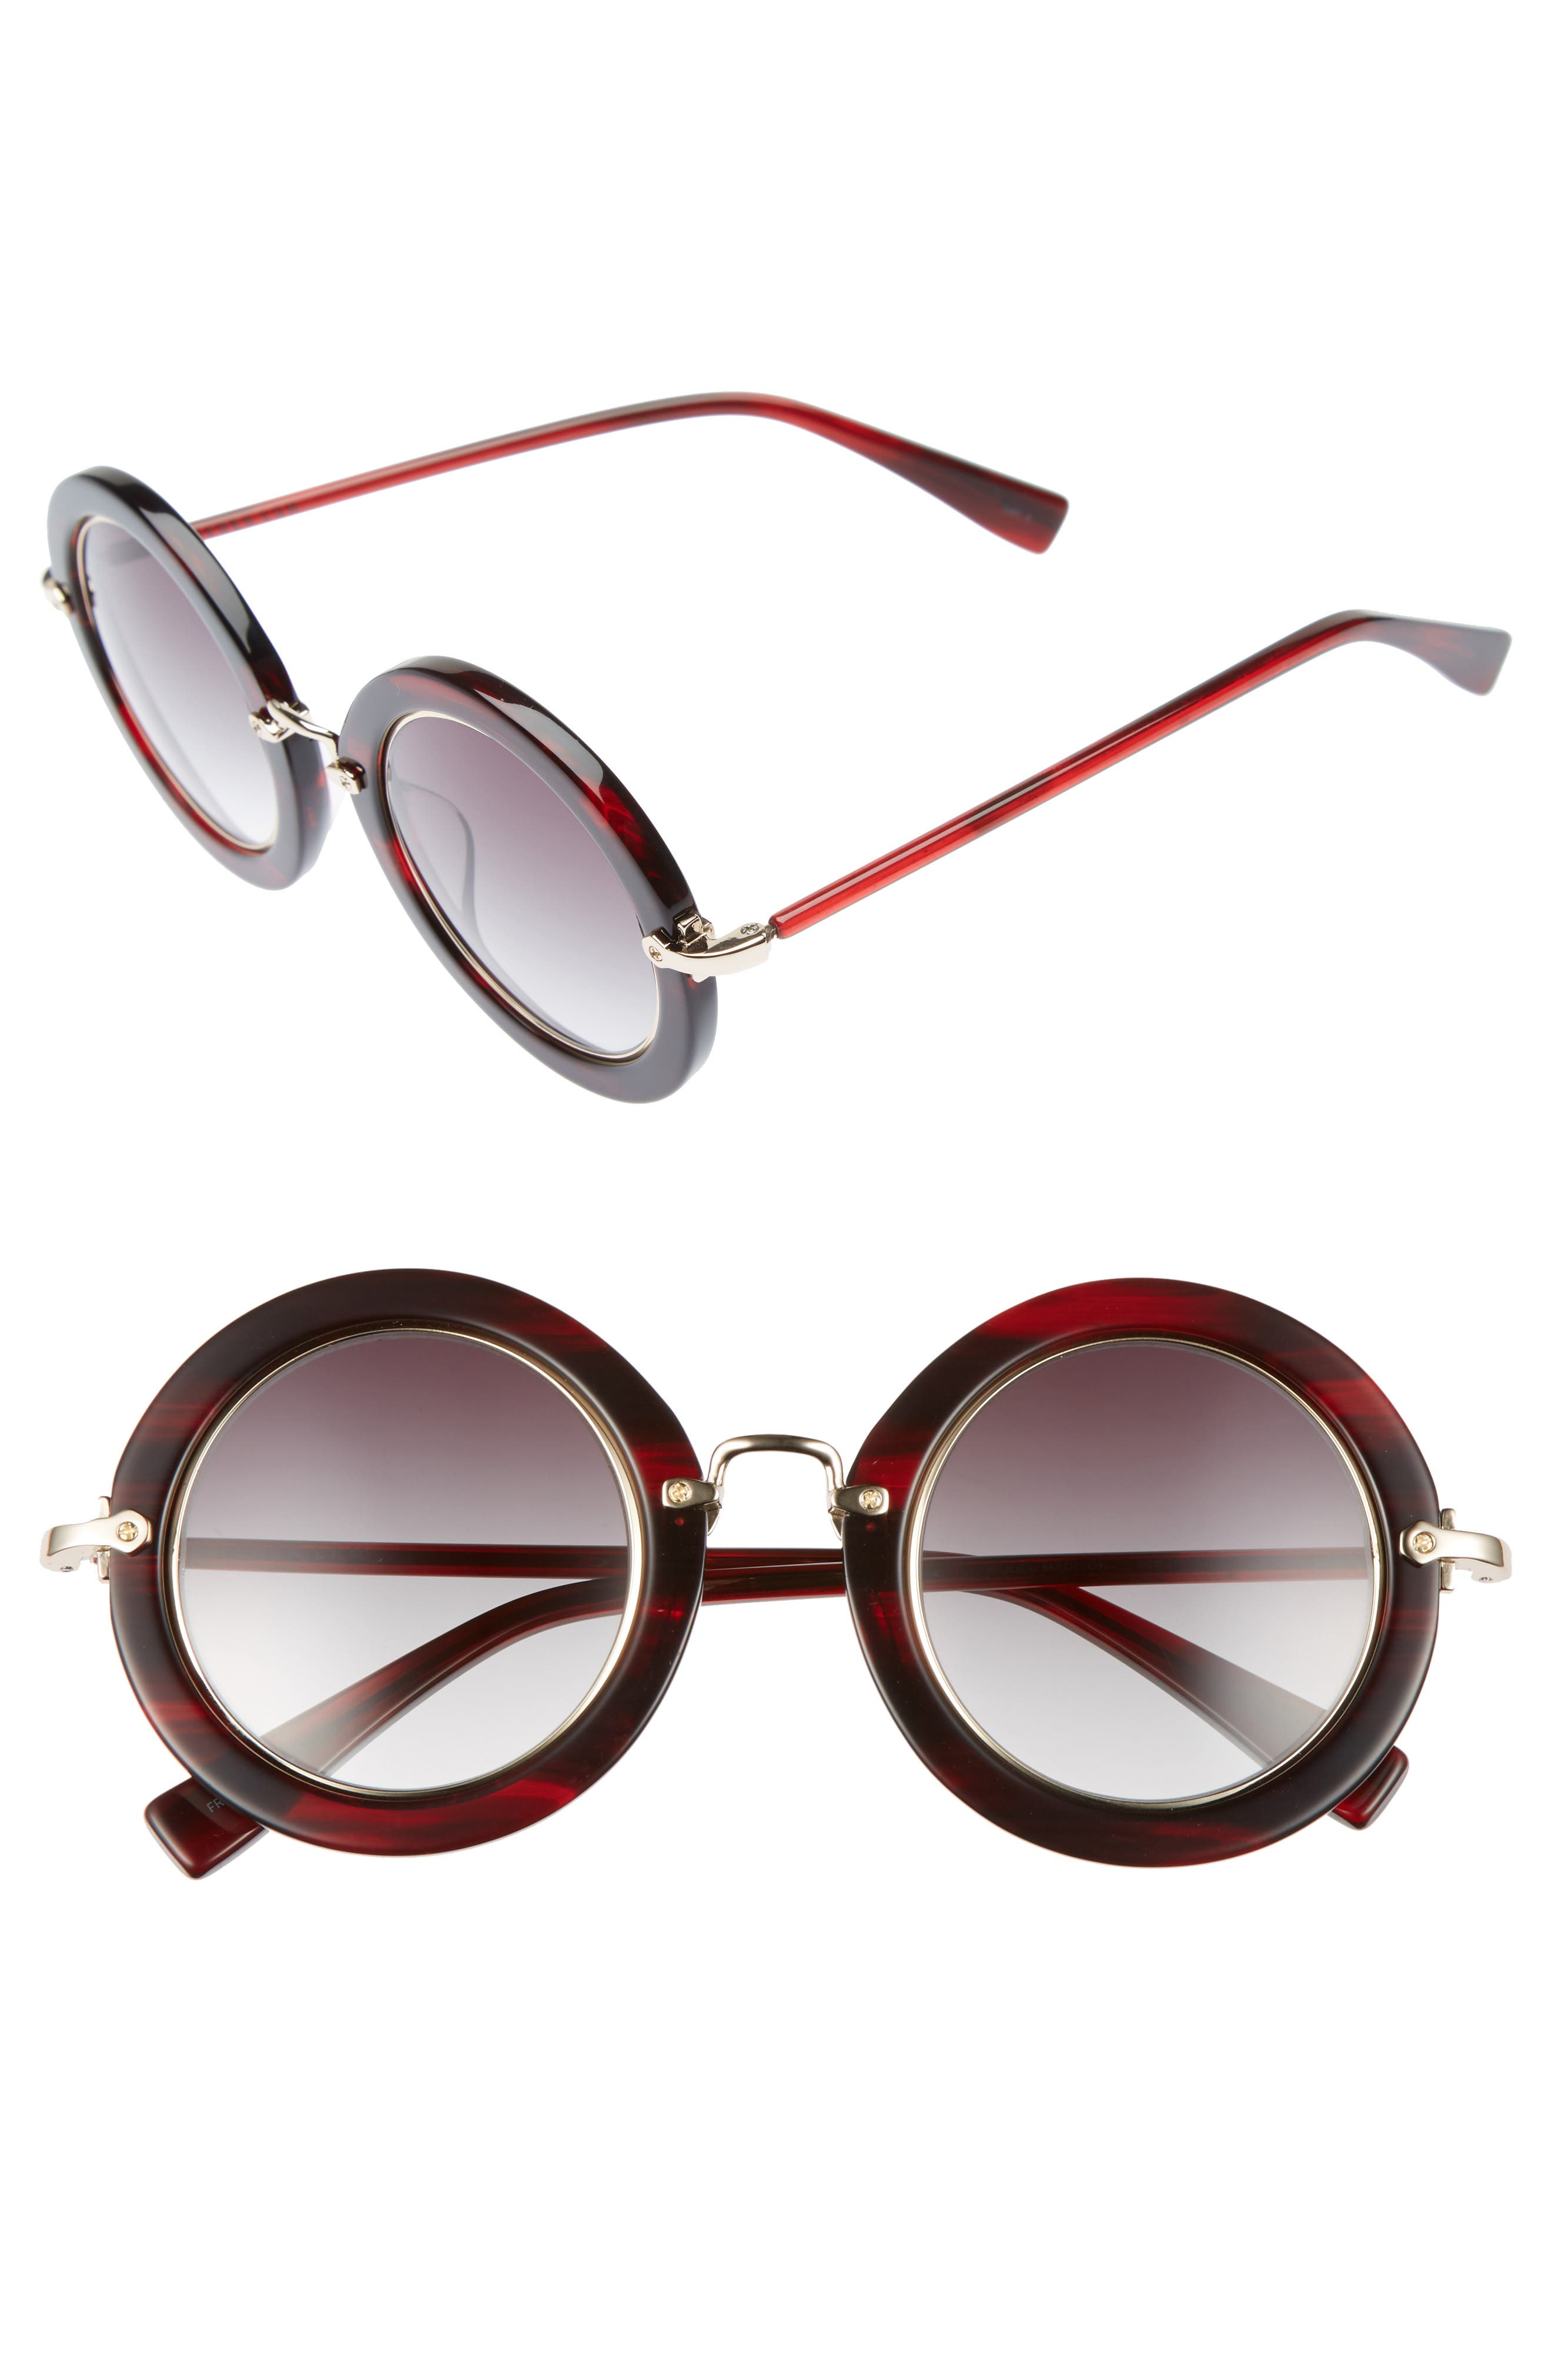 Madison 46mm Round Sunglasses,                             Main thumbnail 1, color,                             RED FEATHER